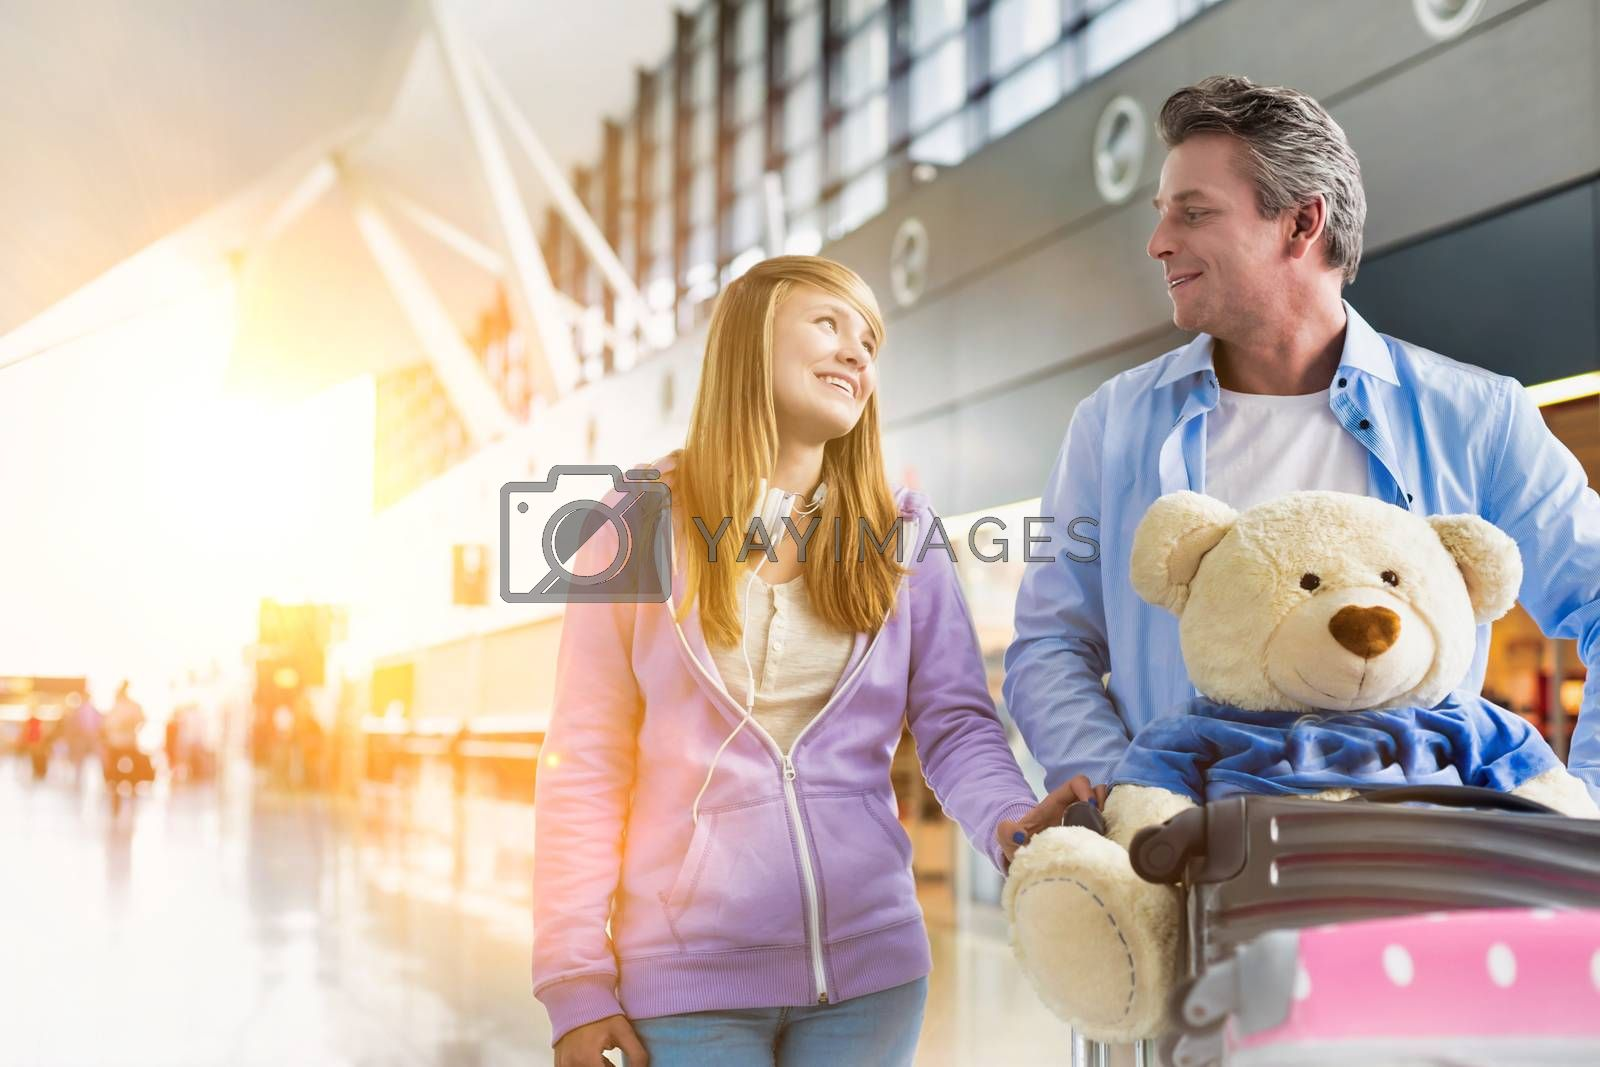 Portrait of mature man pushing baggage cart while walking with her daughter in airport with lens flare